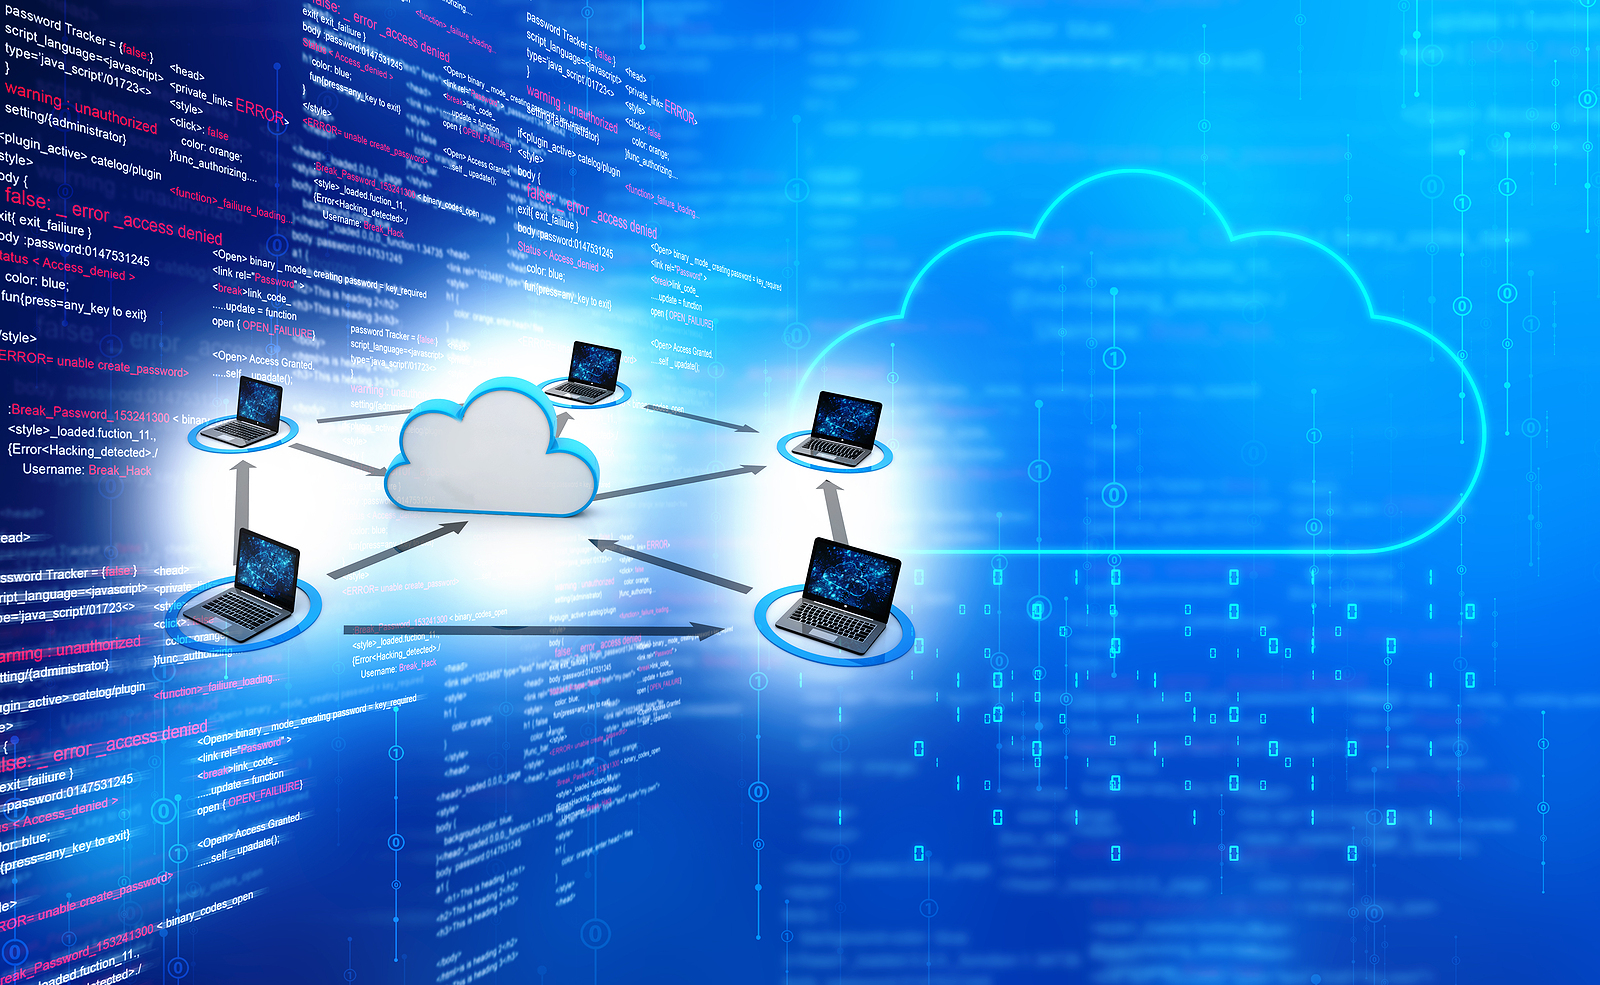 Cloud Computing Trends - The latest news and trends